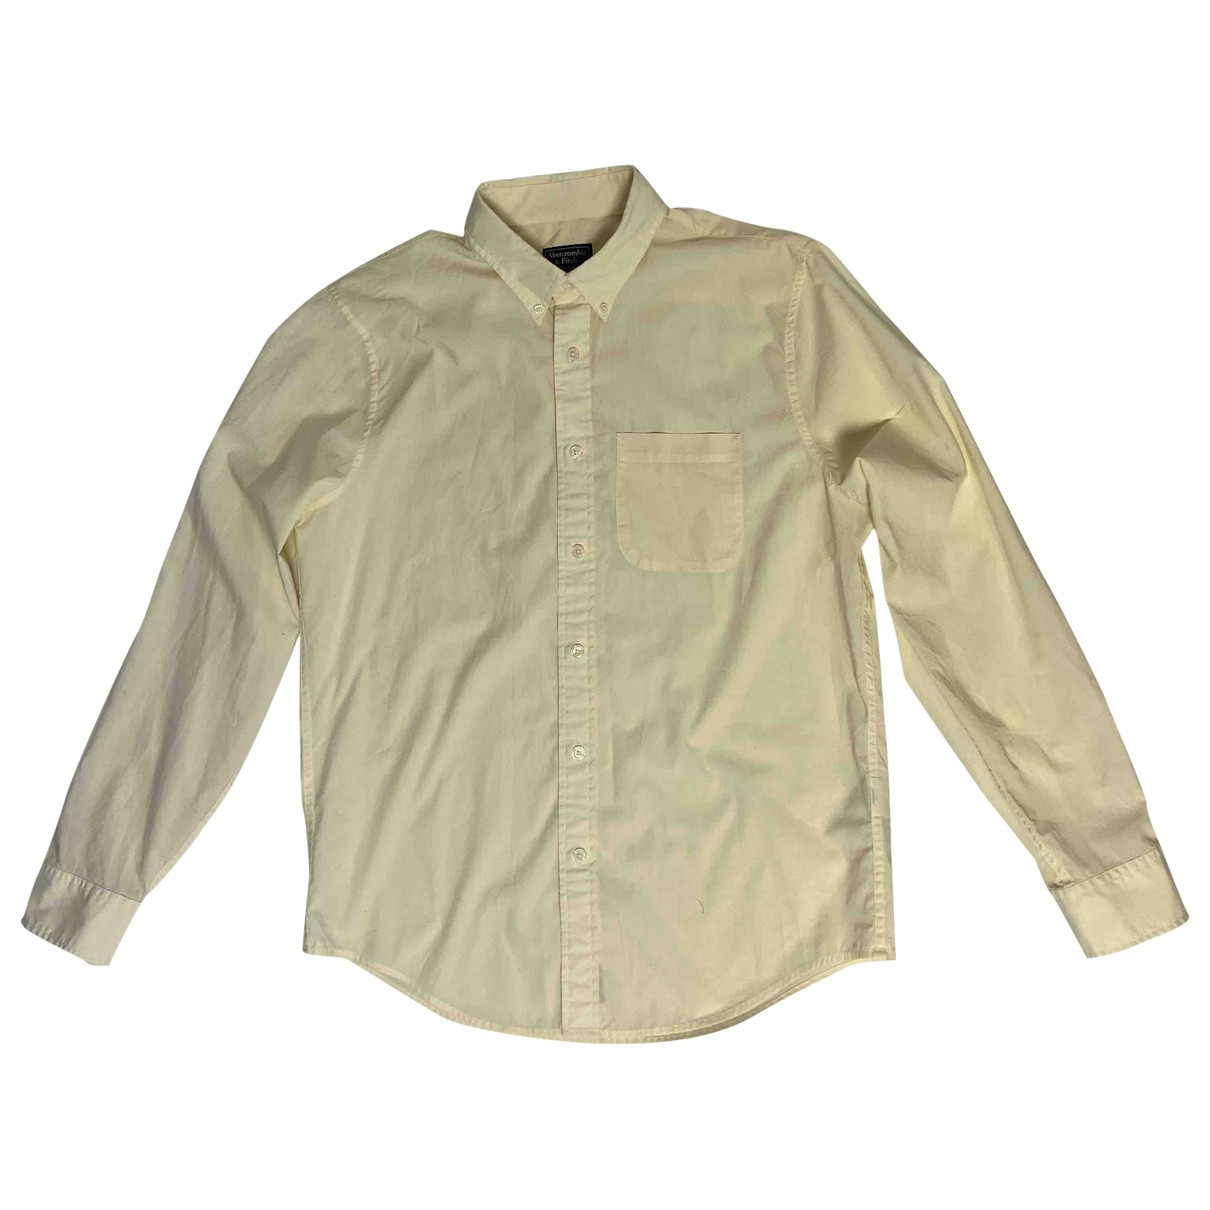 Abercrombie & Fitch \N Yellow Cotton Shirts for Men XL International